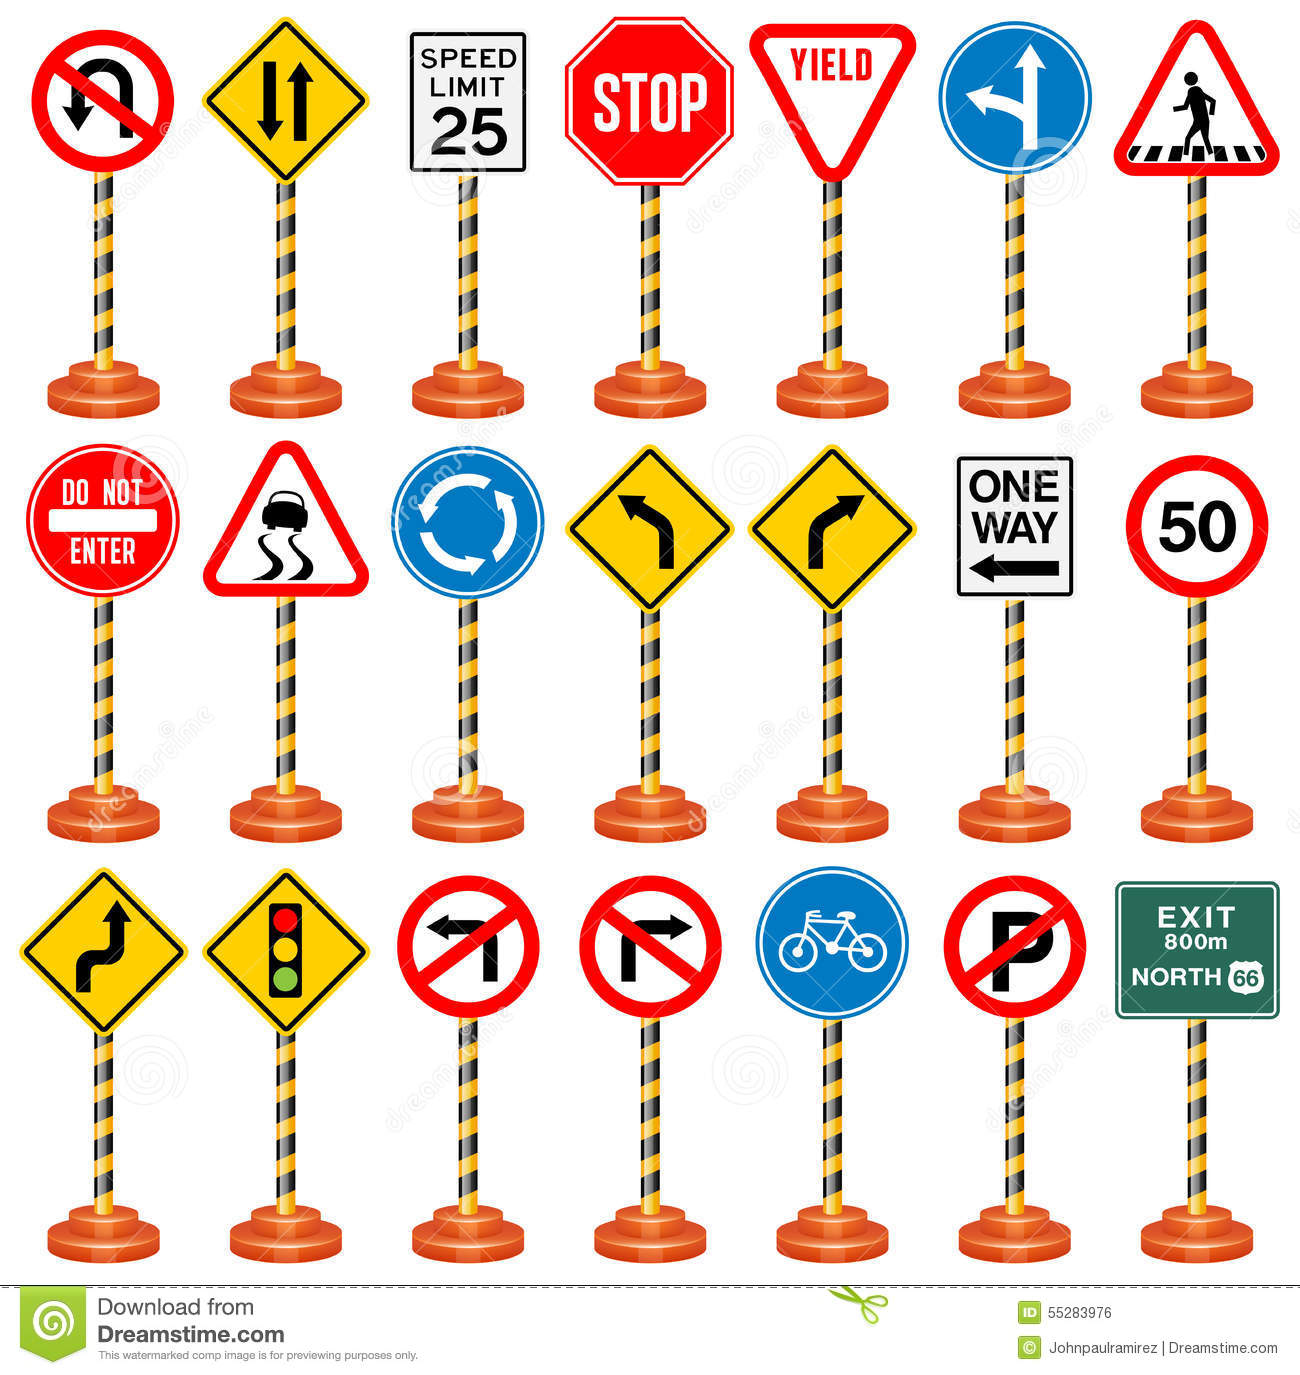 Traffic signs in the philippines mg global ads a professional traffic signs in the philippines mg global ads a professional sign maker buycottarizona Image collections